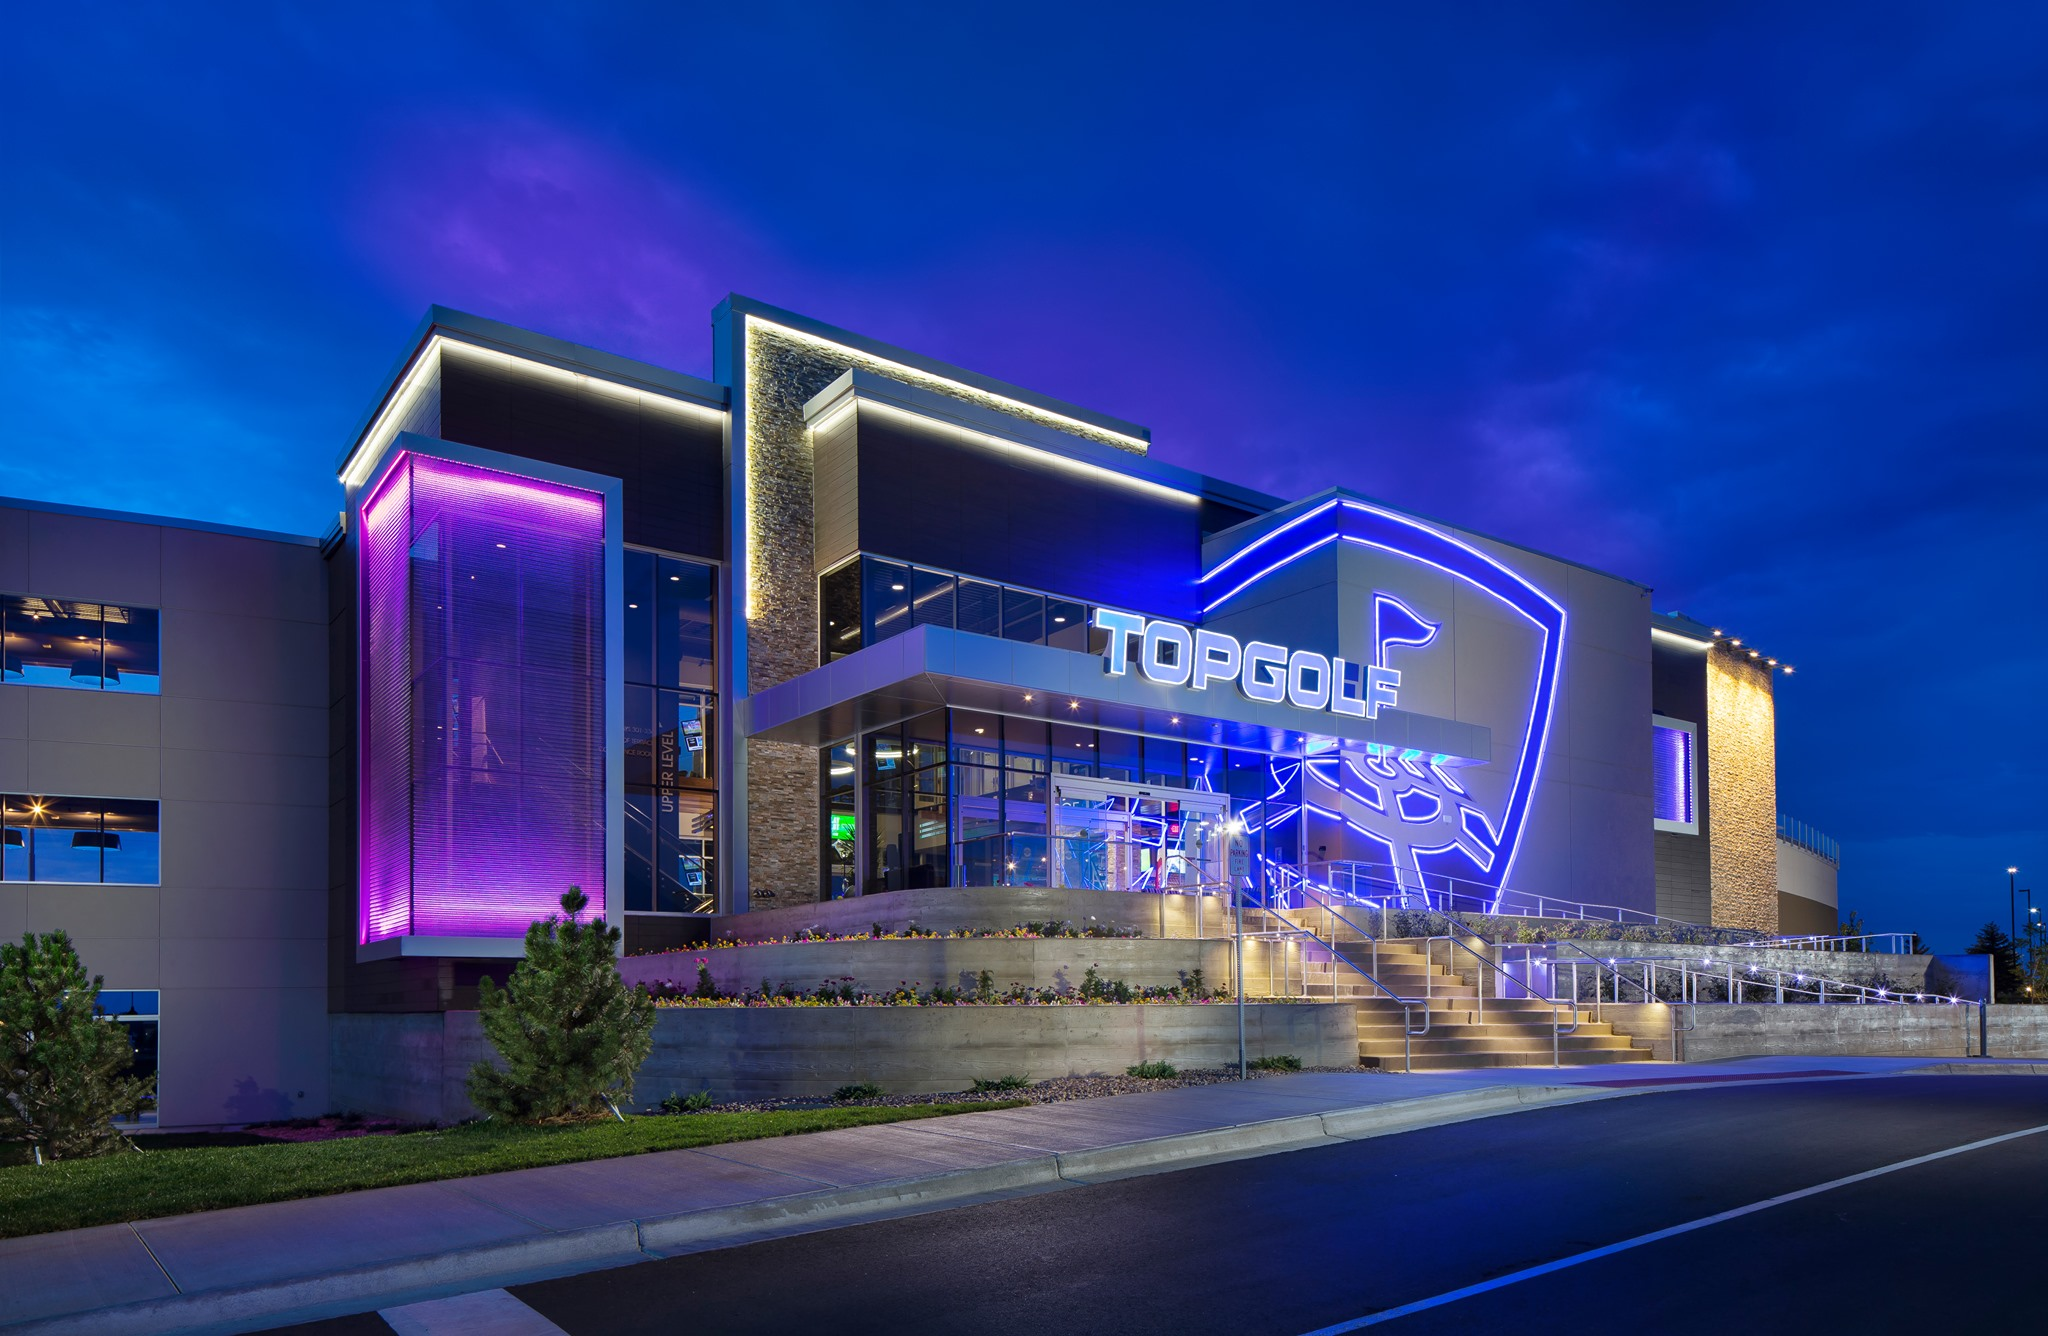 Top Golf Event - Blended Perspectives 3